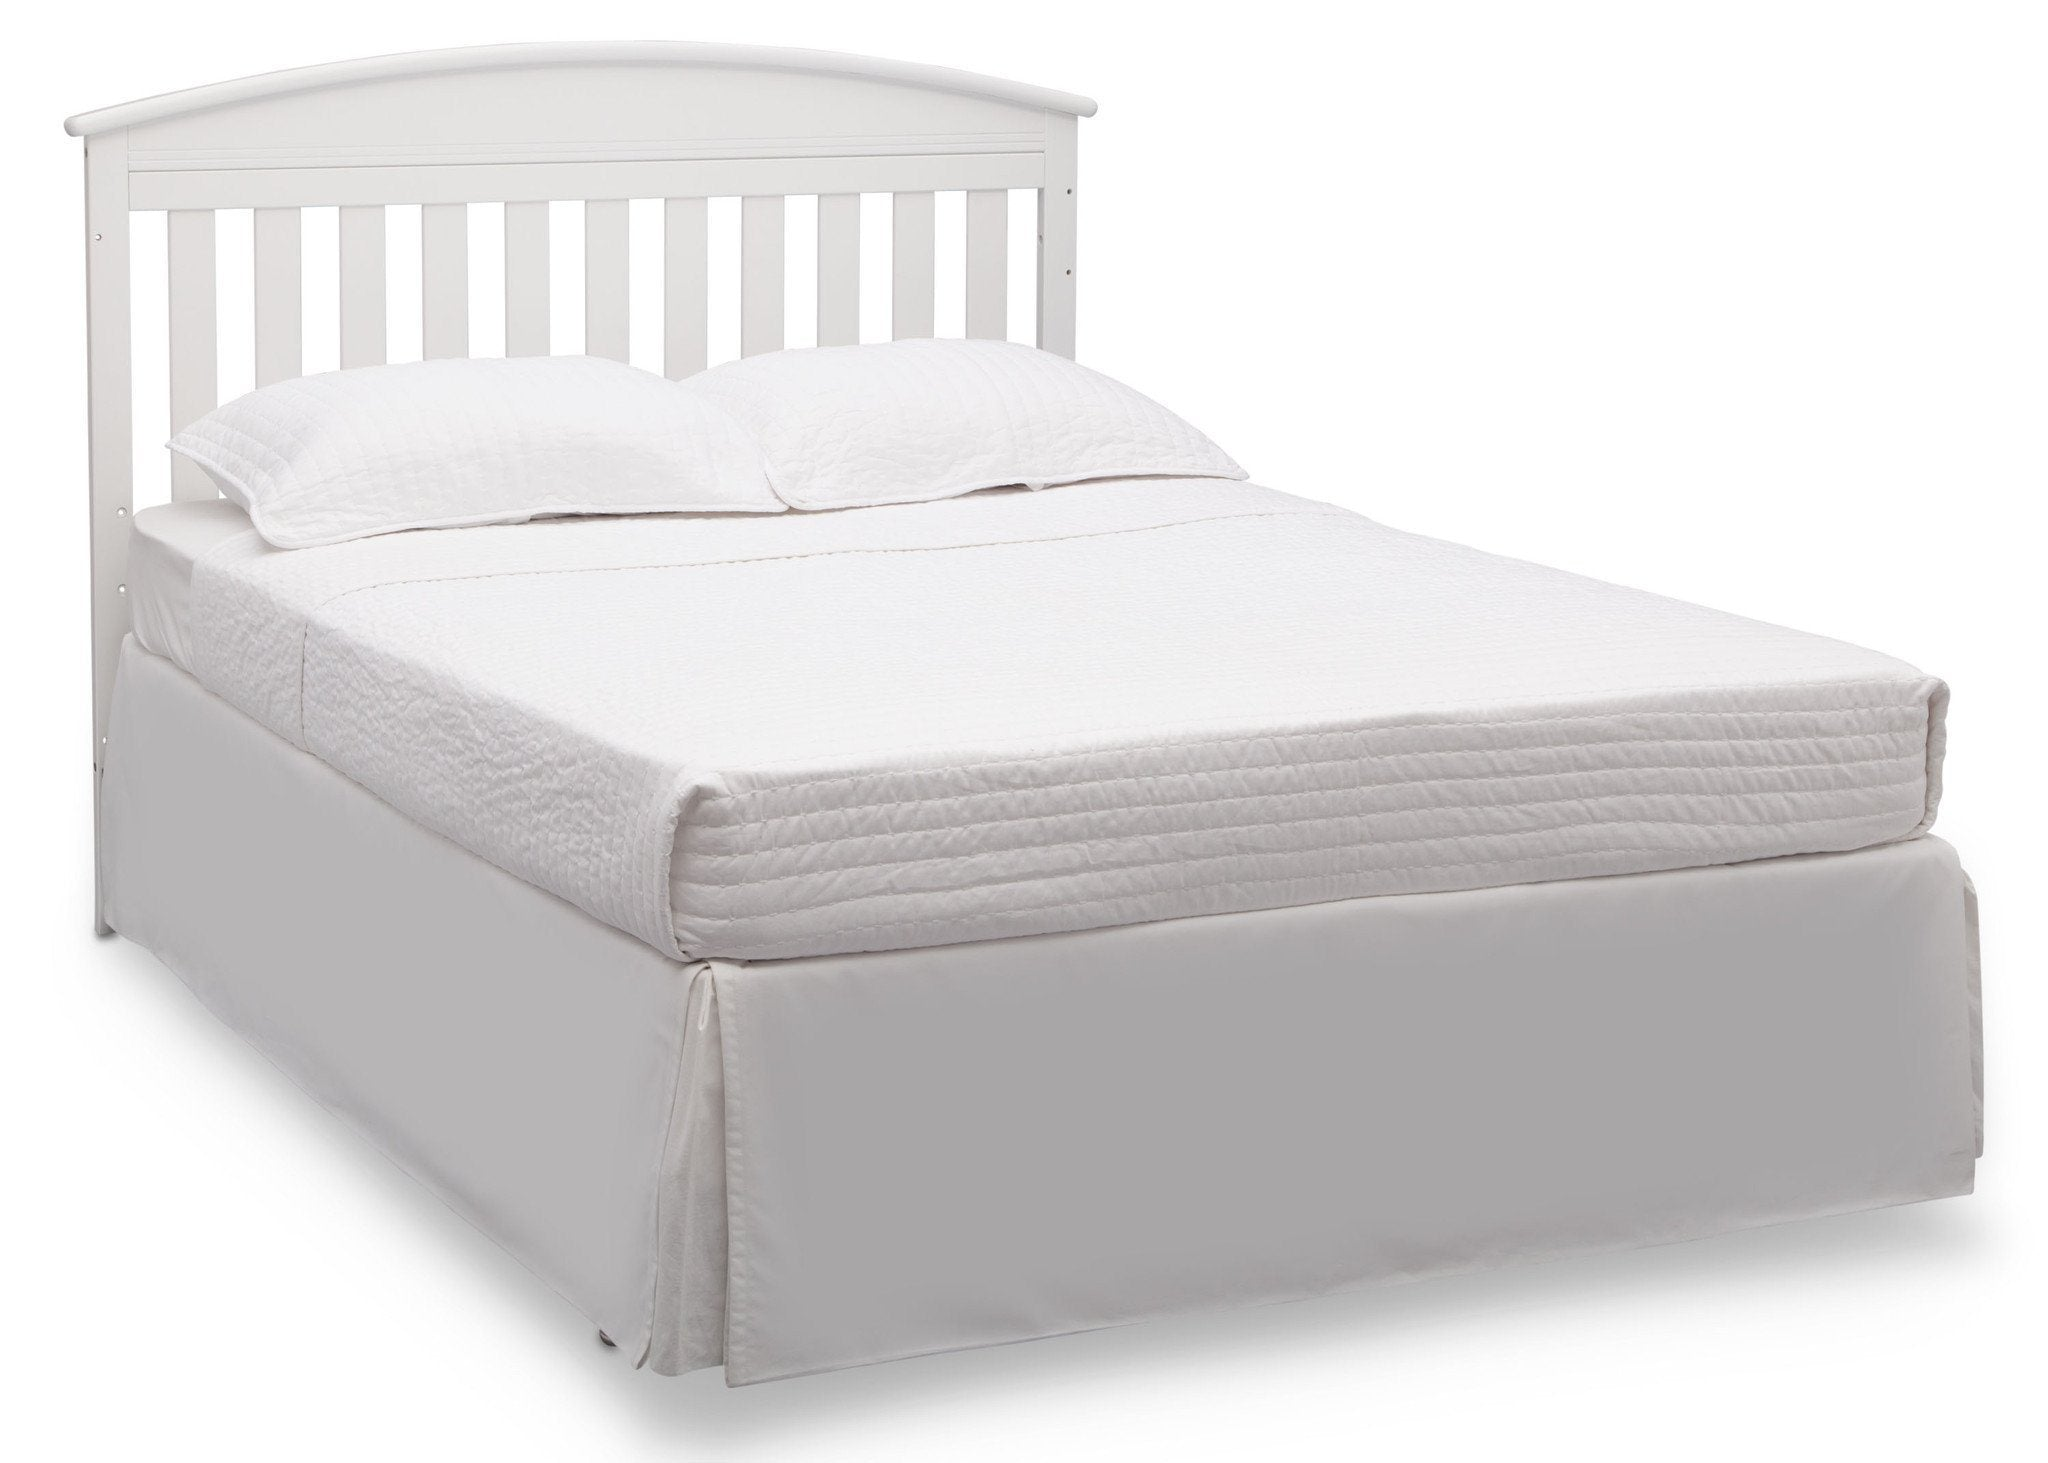 Delta Children Bianca White (130) Abby Crib N Changer, Full Bed b4b